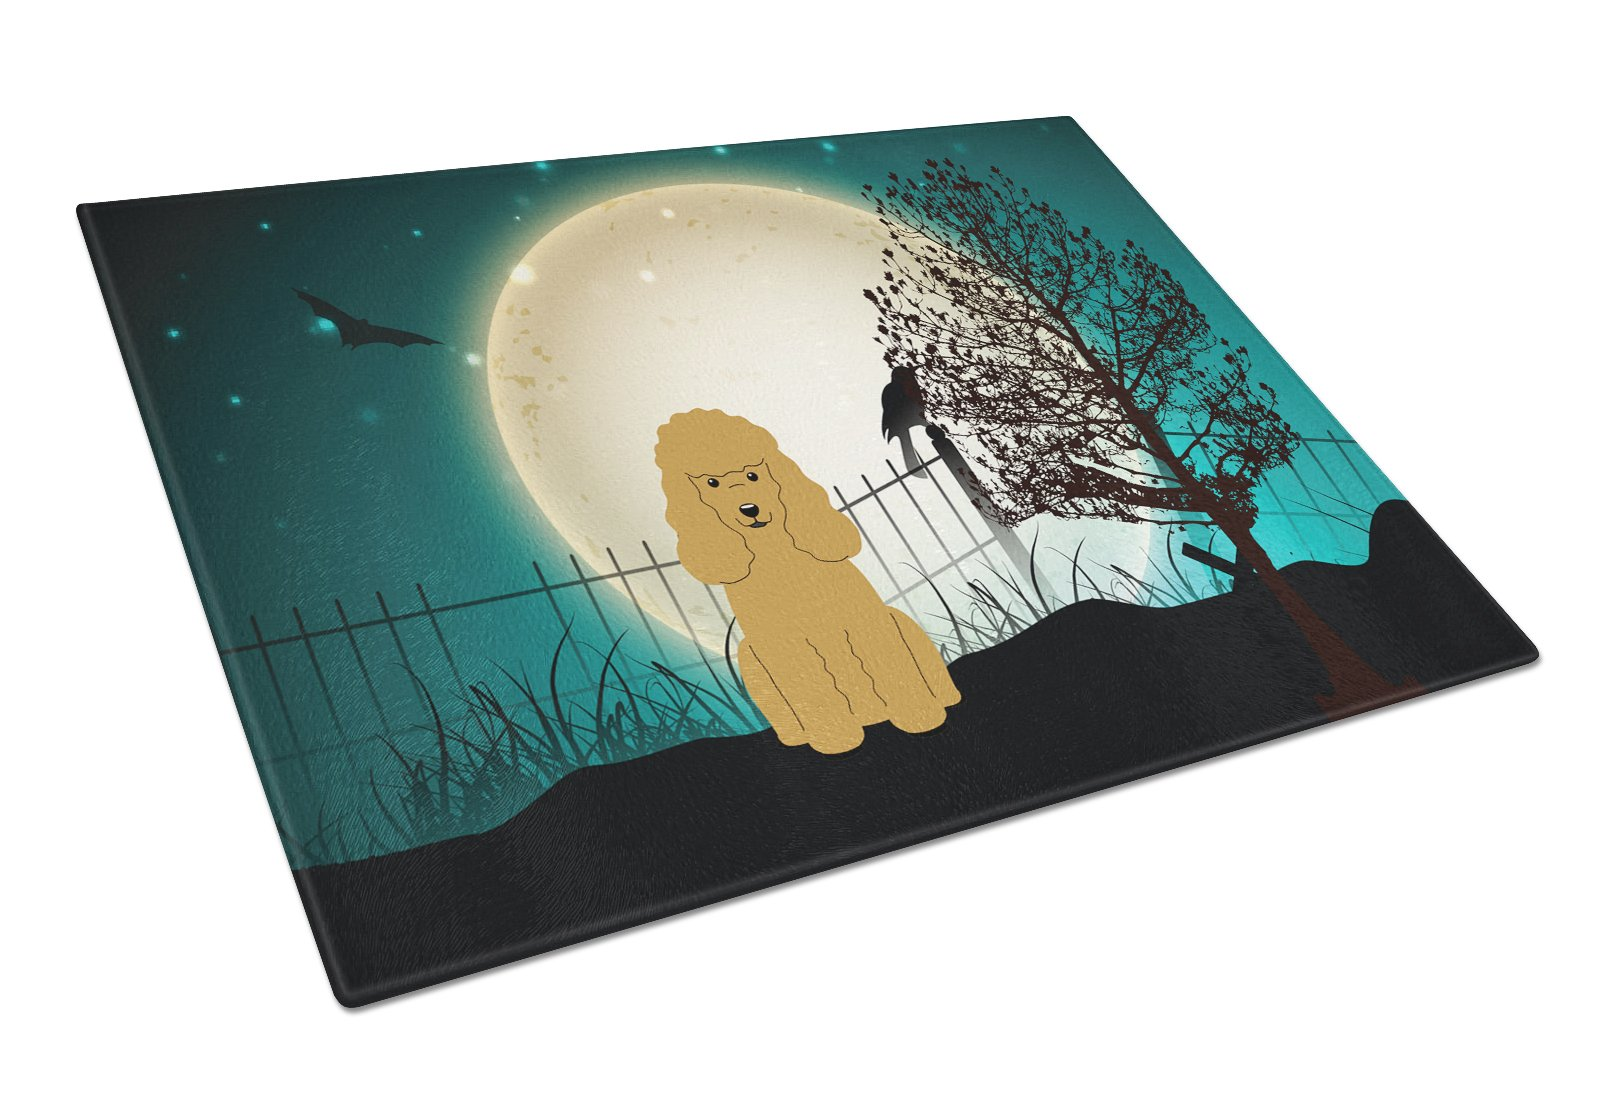 Halloween Scary Poodle Tan Glass Cutting Board Large BB2259LCB by Caroline's Treasures